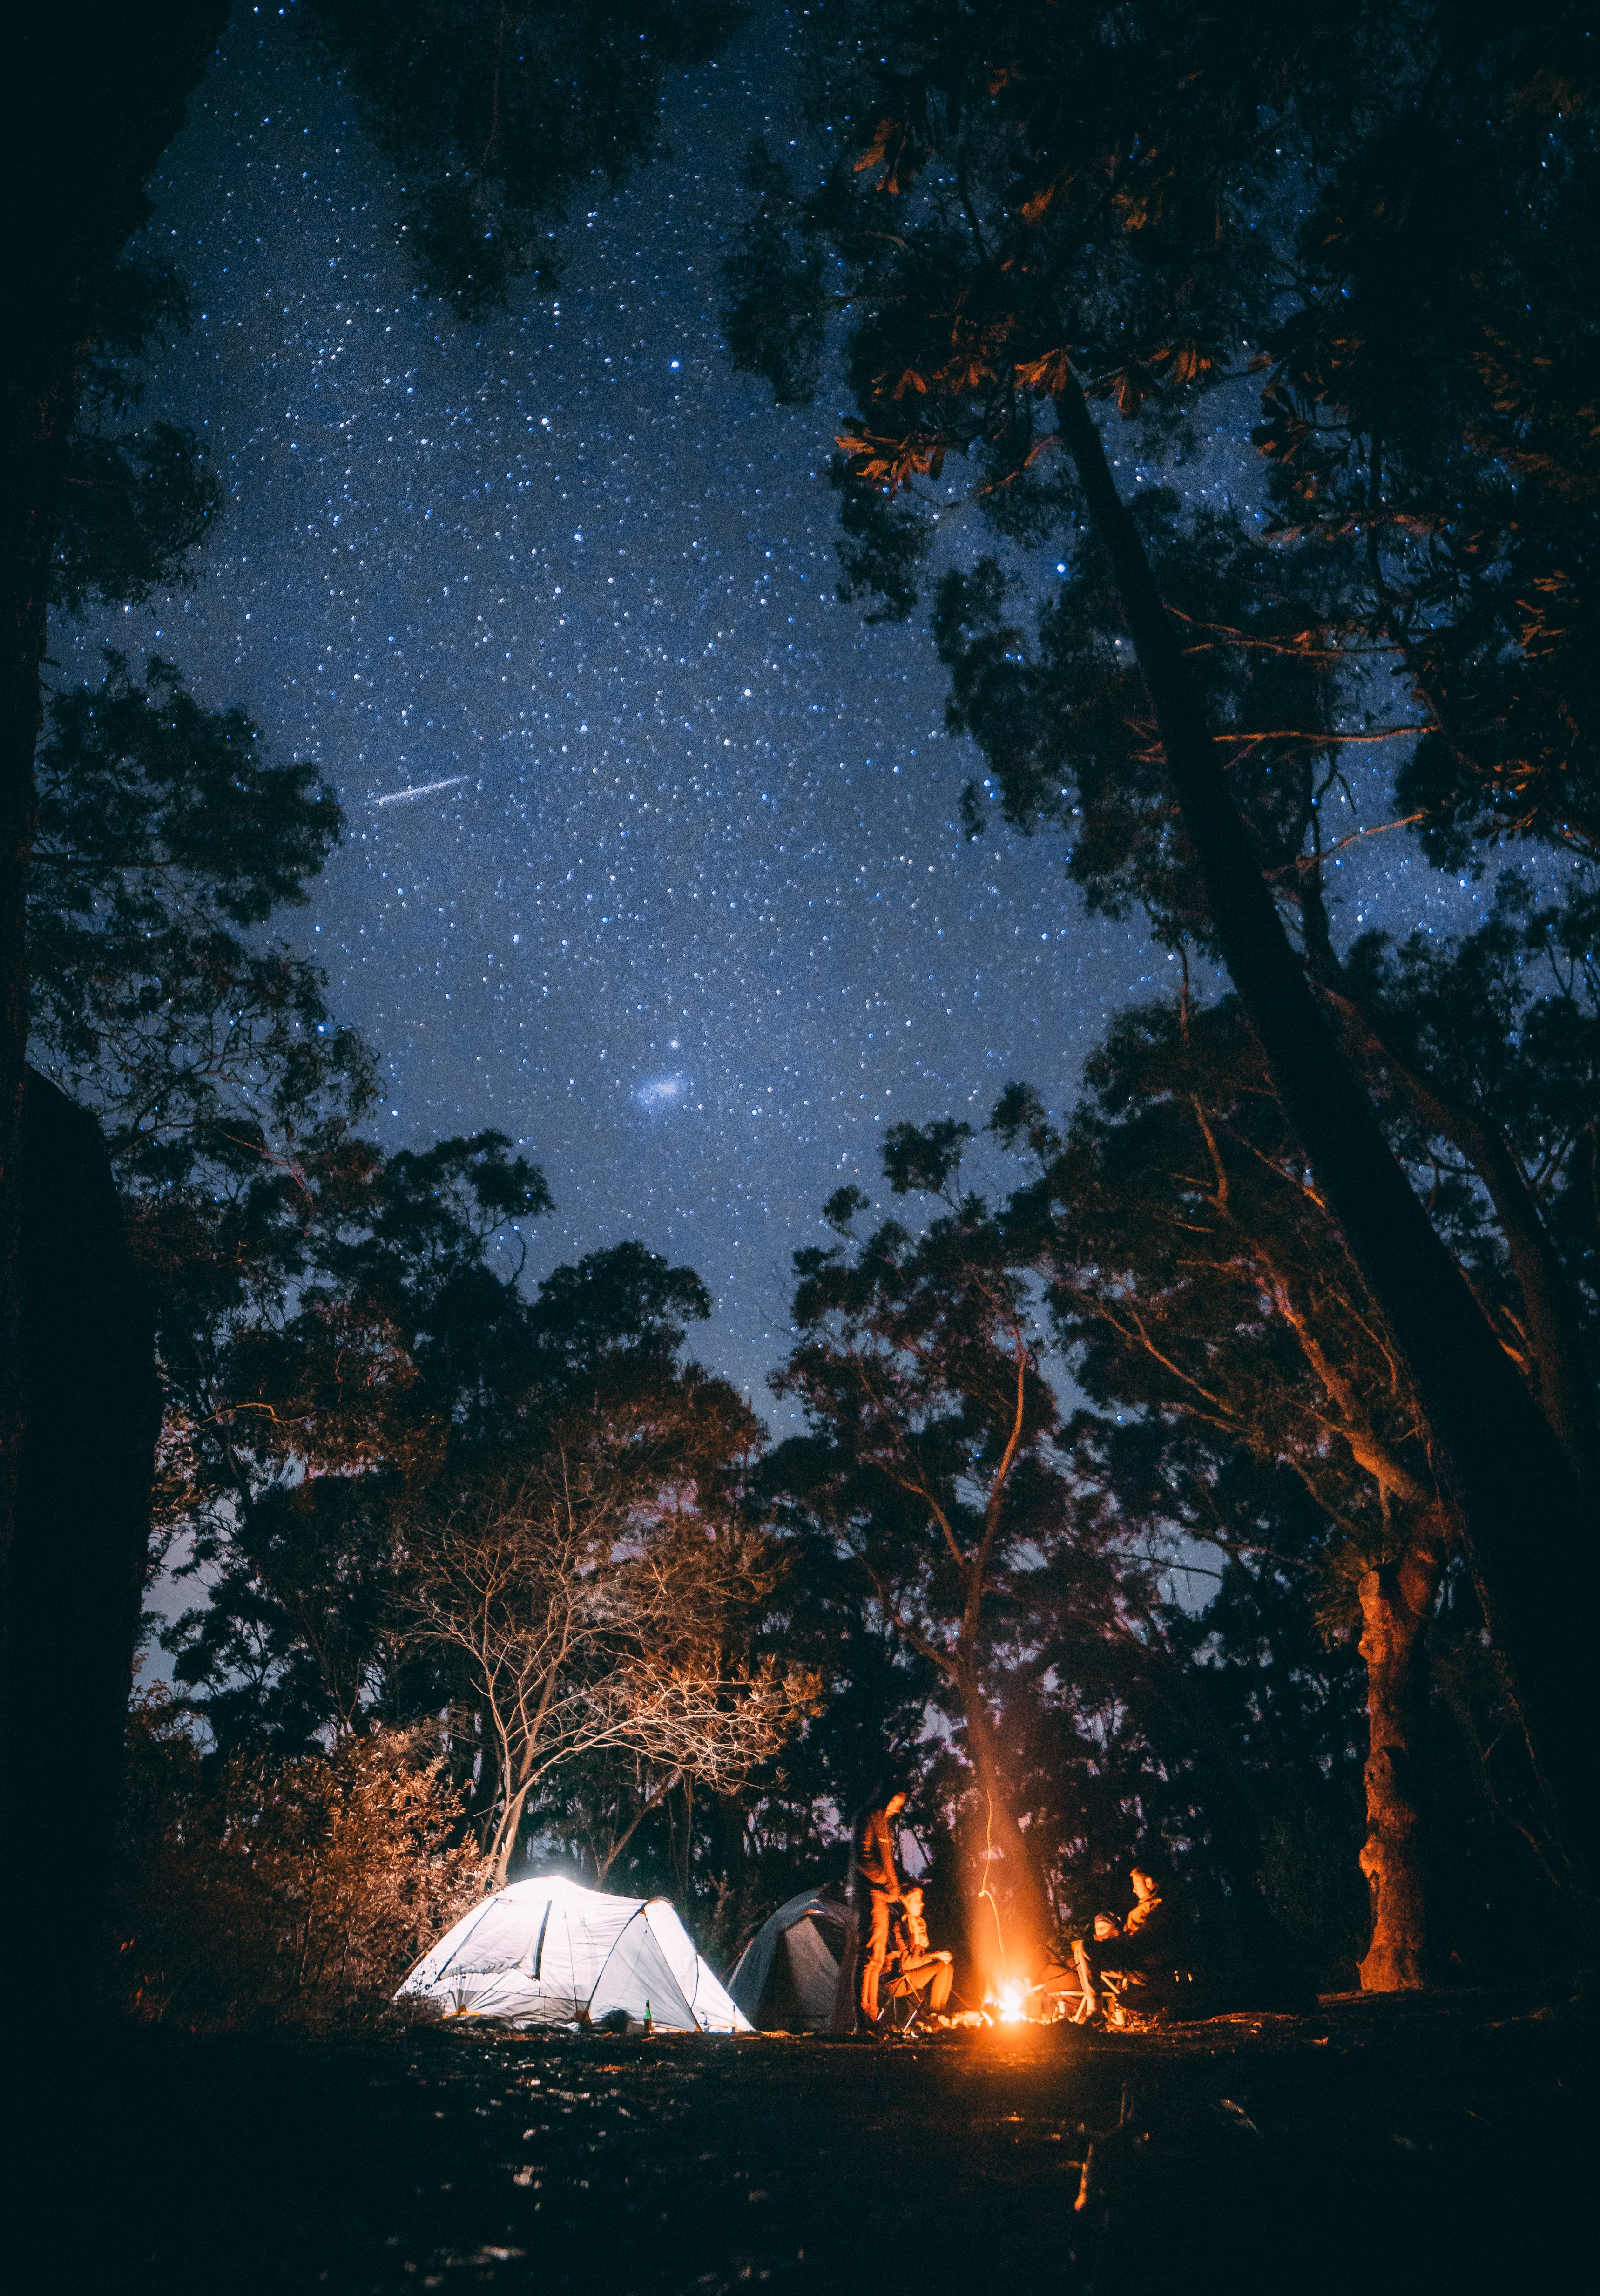 101974 Screensavers and Wallpapers Bonfire for phone. Download Nature, Trees, Bonfire, Forest, Starry Sky, Relaxation, Rest, Tent, Camping, Campsite pictures for free